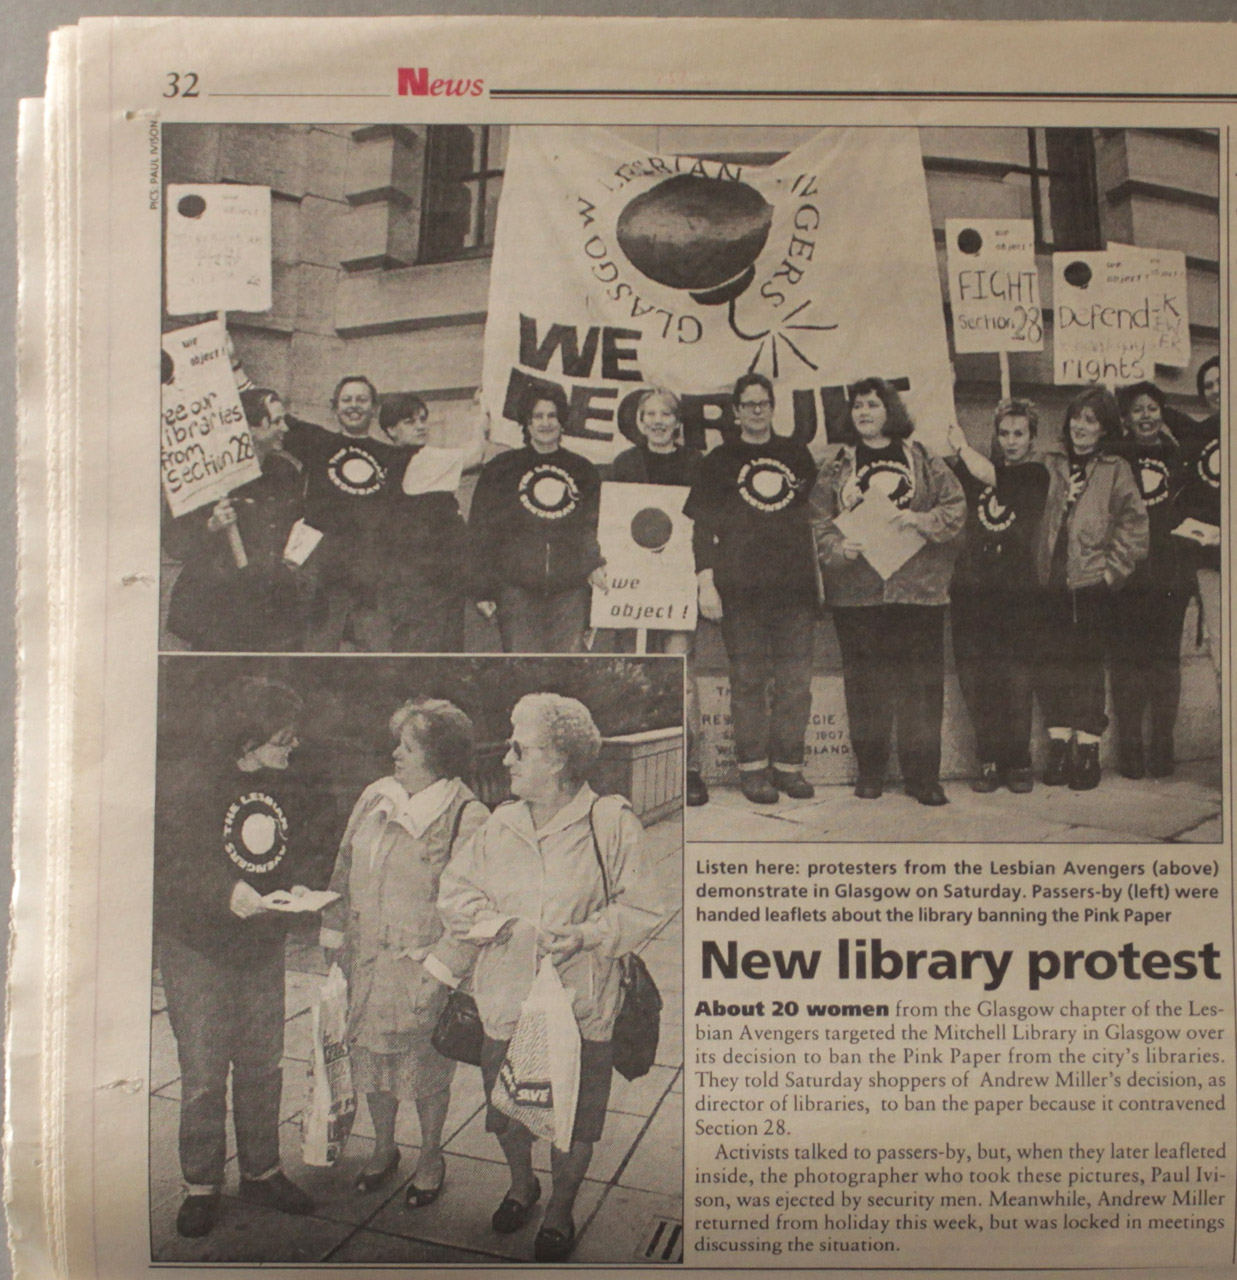 Coverage of the Lesbian Avengers action at the Mitchell Library, Pink Paper, 6th October, 1995.